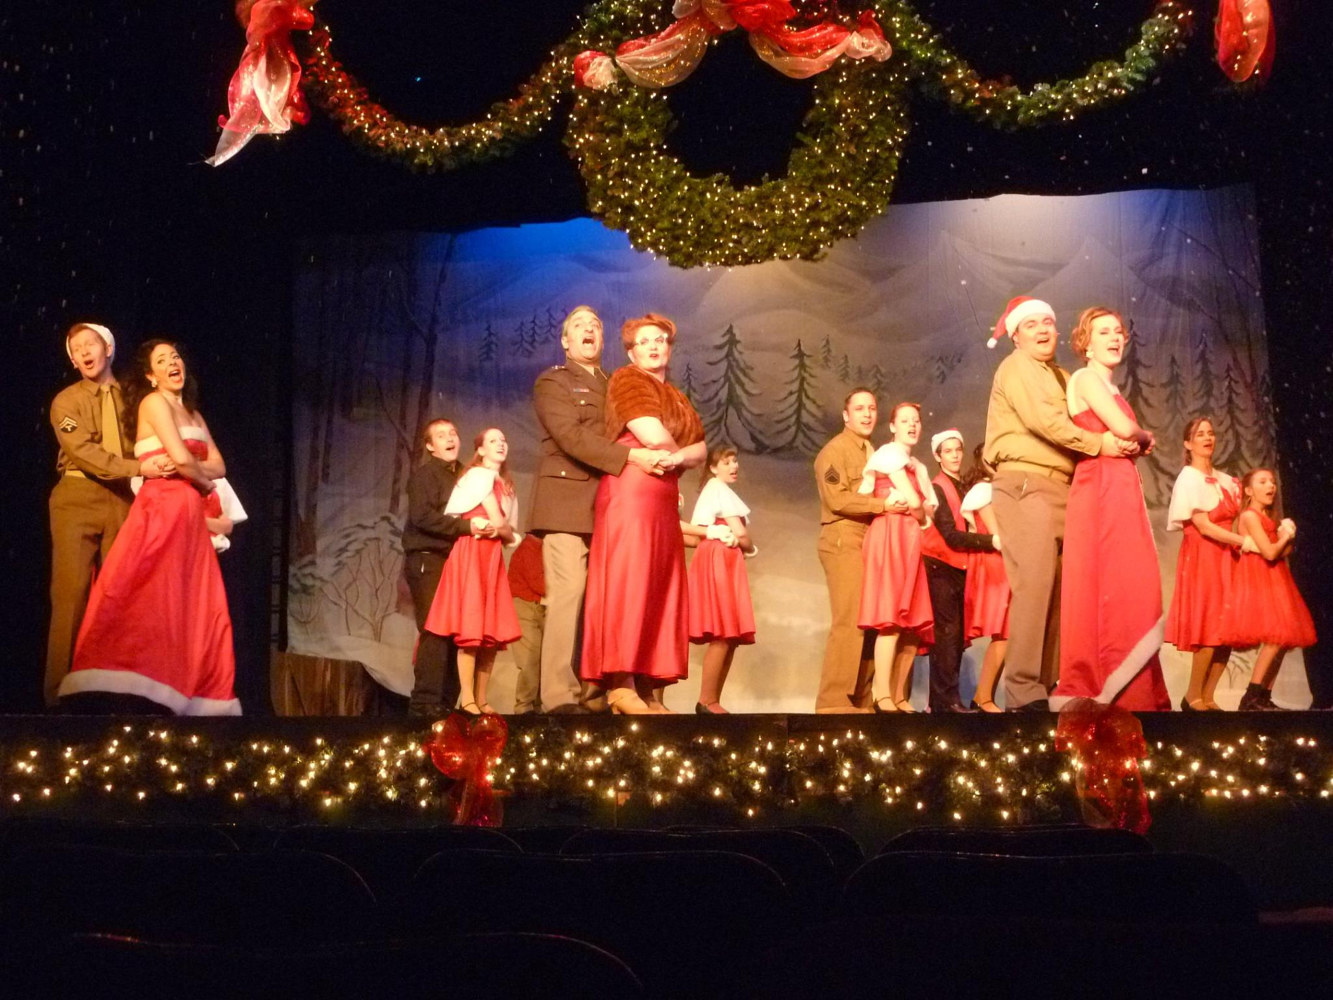 White Christmas - Academy Theatre - December 2014 by Yvonne Shaffer